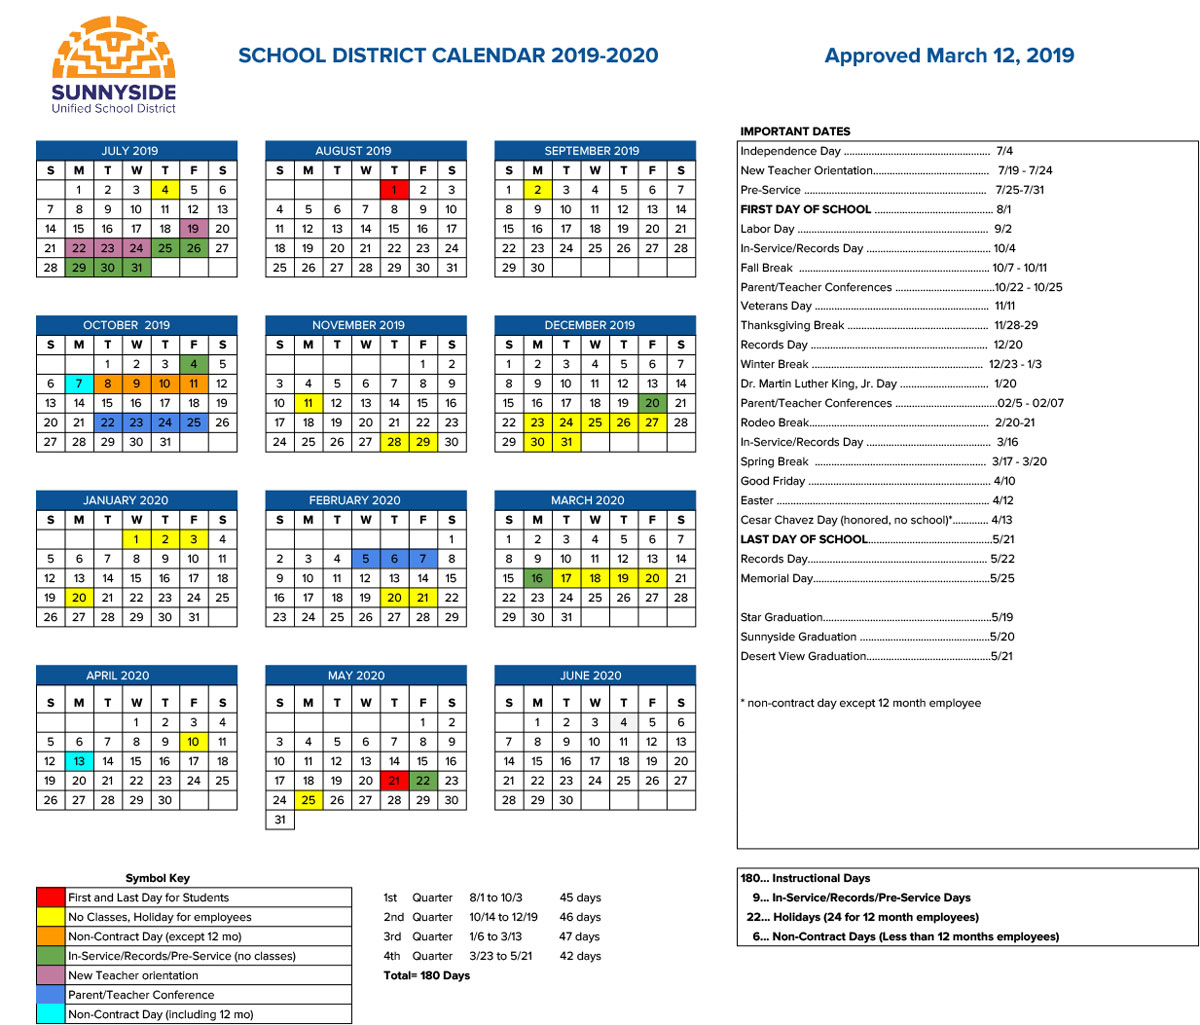 Academic Calendar | Sunnyside Unified School District intended for Scottsdale Unified School District Calendar